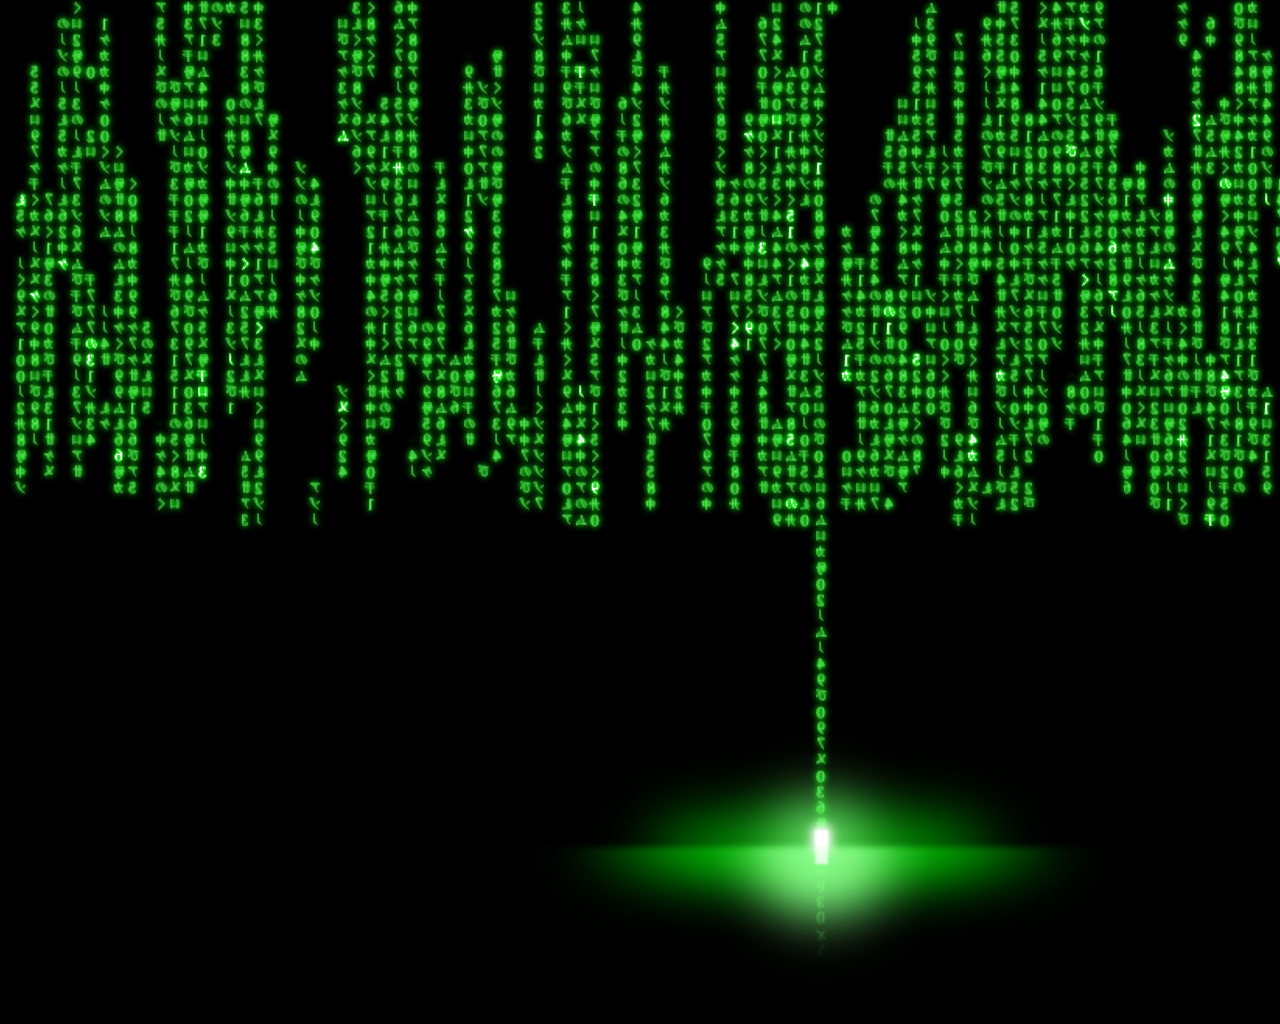 The Matrix Wallpaper Hd Sf Wallpaper